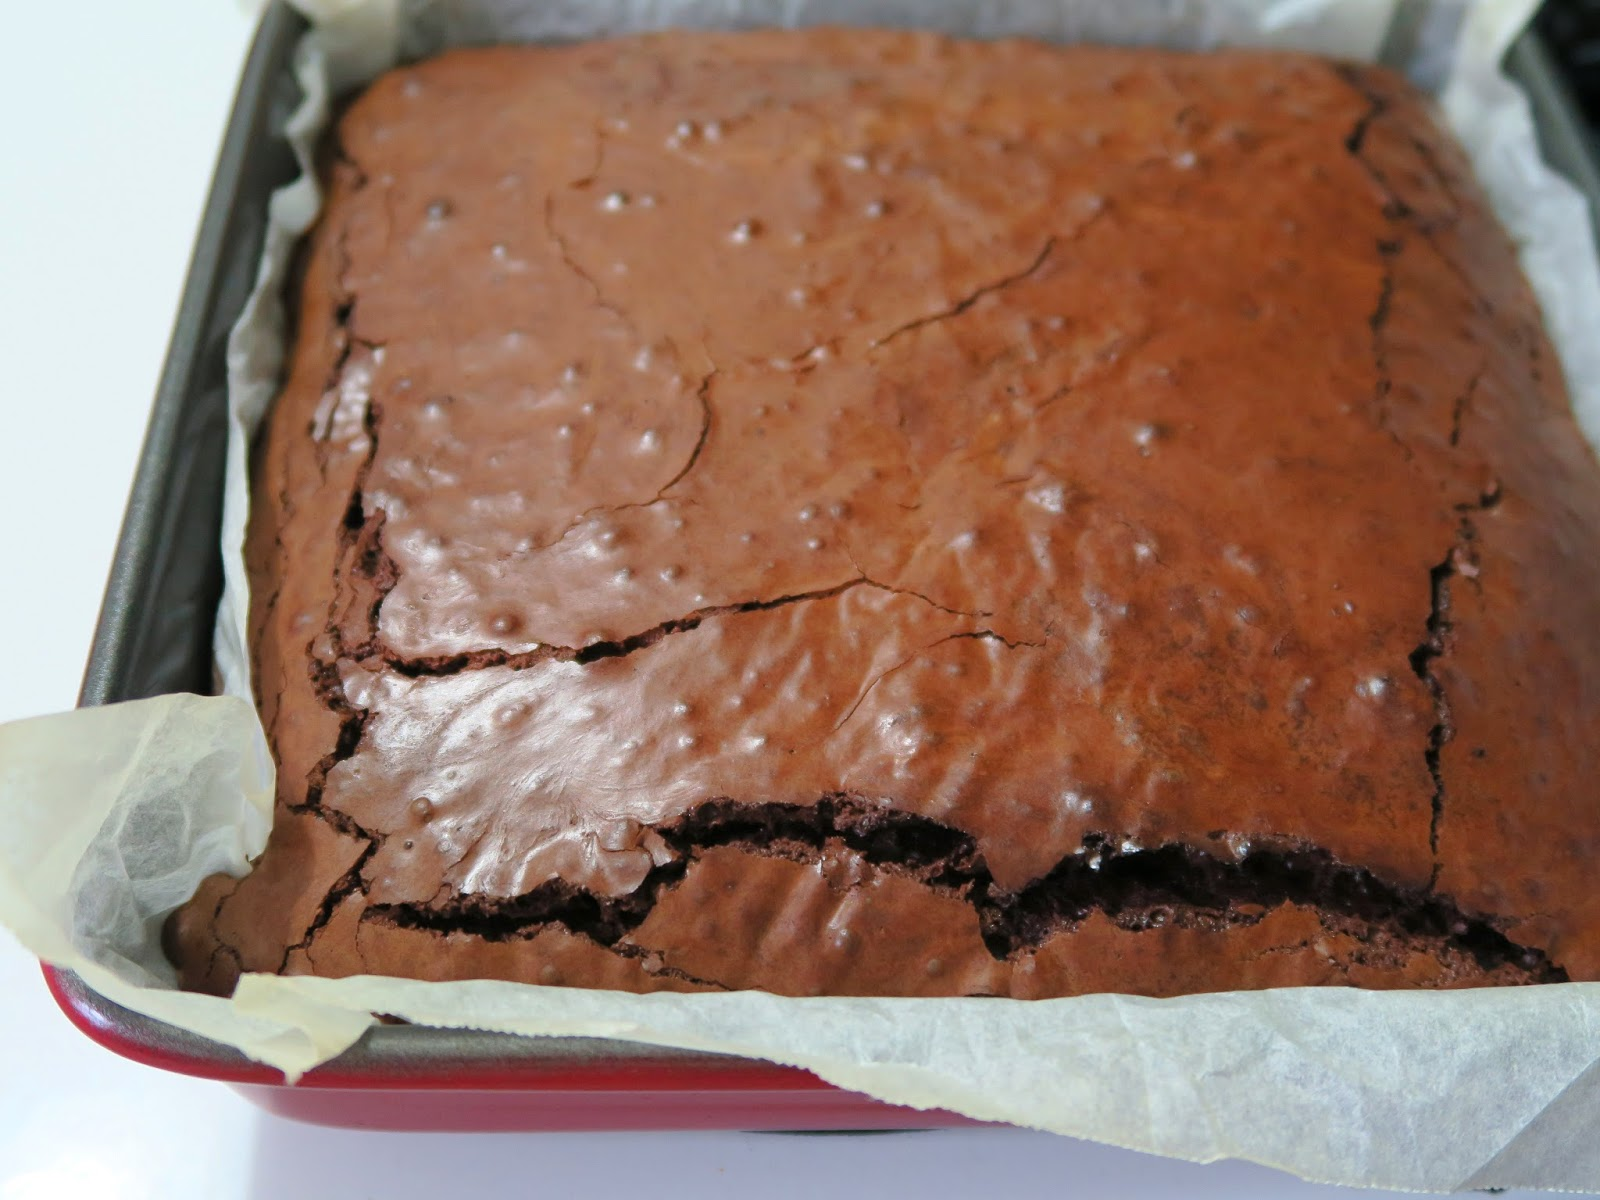 Brownies from New York Cult Recipes